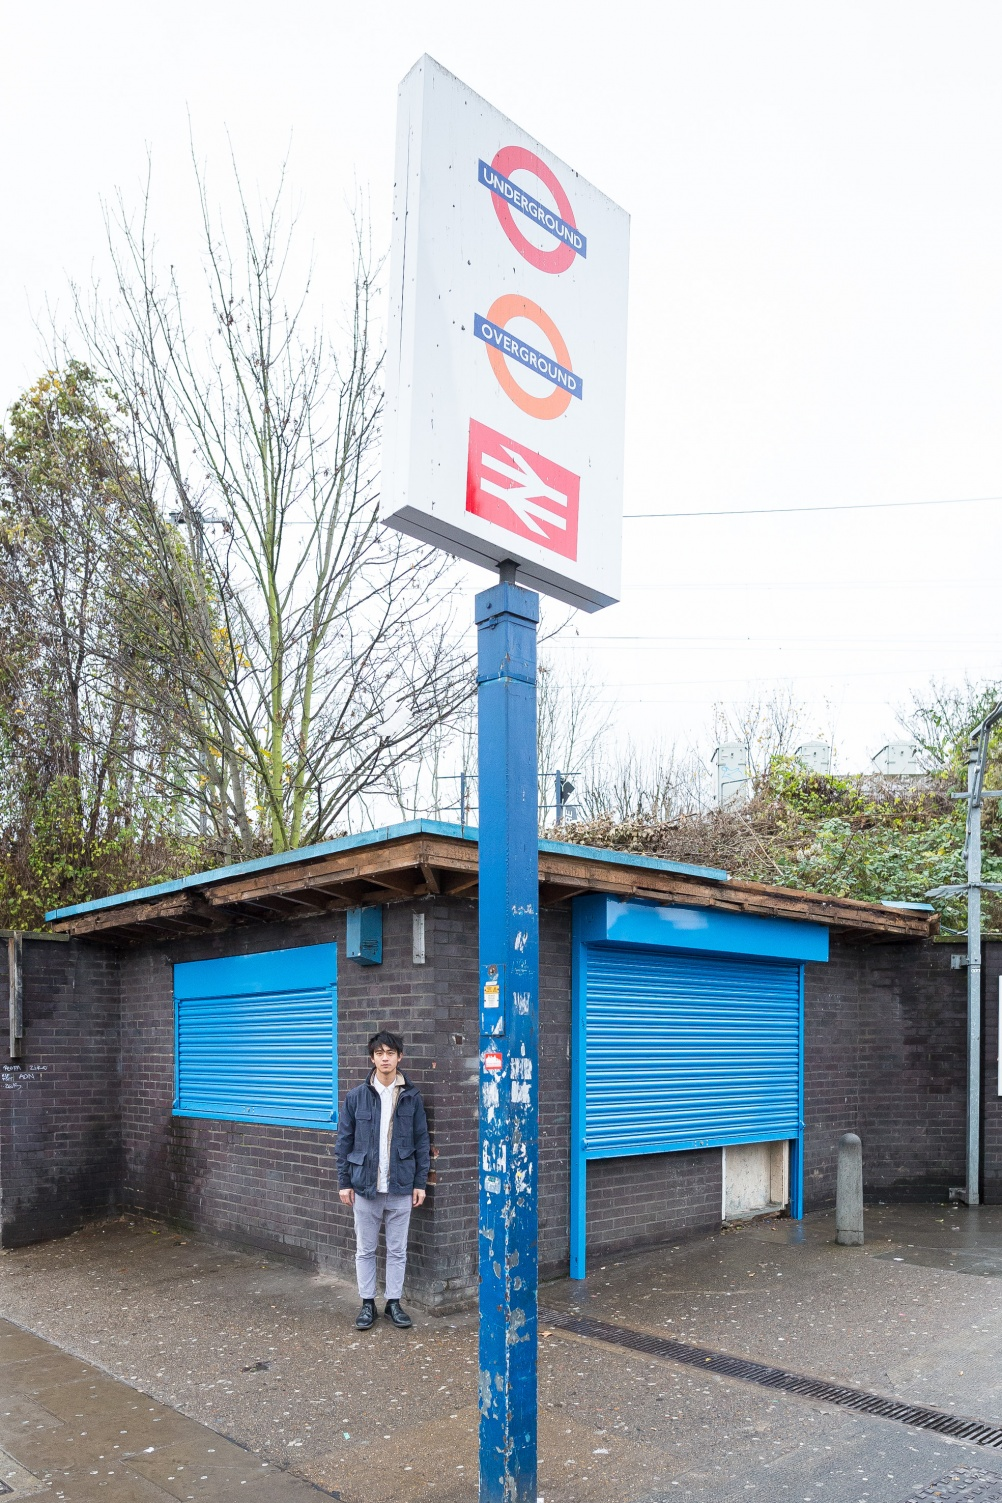 Mathew Leung, Assemble at Seven Sisters station for Art on the Underground (c) Benedict Johnson